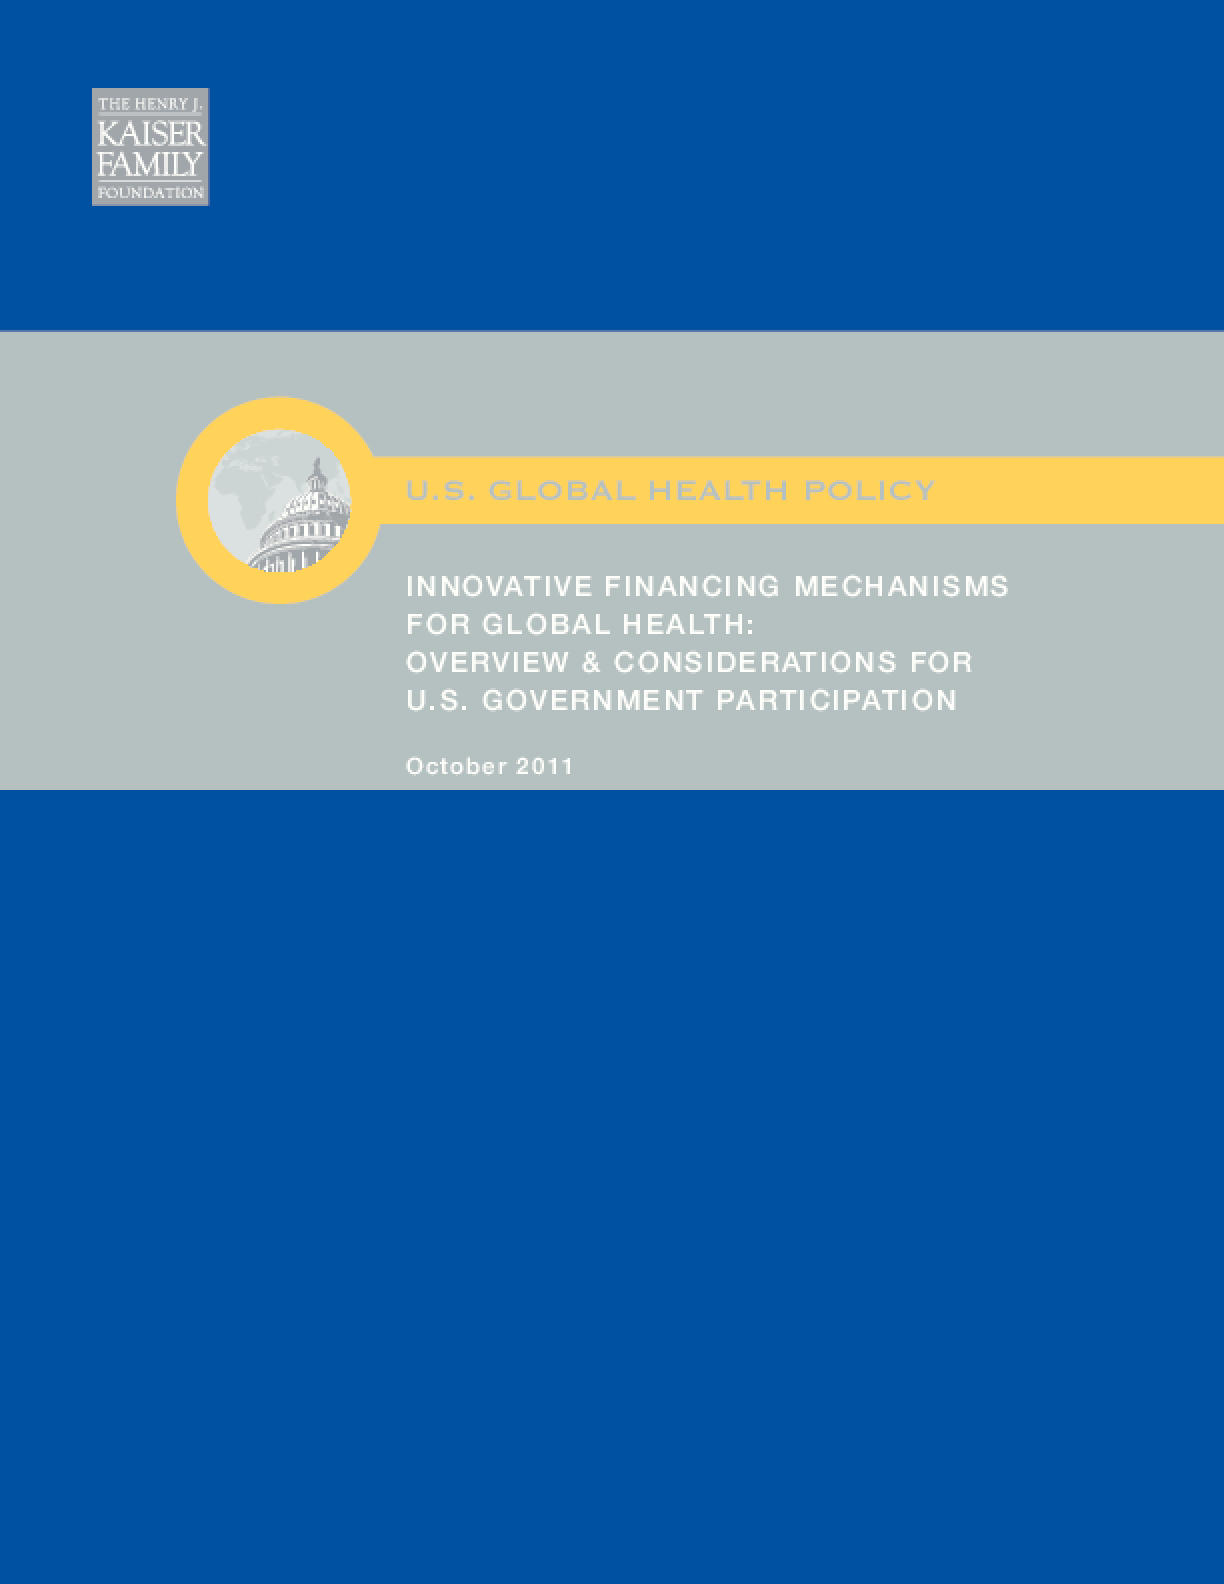 Innovative Financing Mechanisms for Global Health: Overview & Considerations for U.S. Government Participation